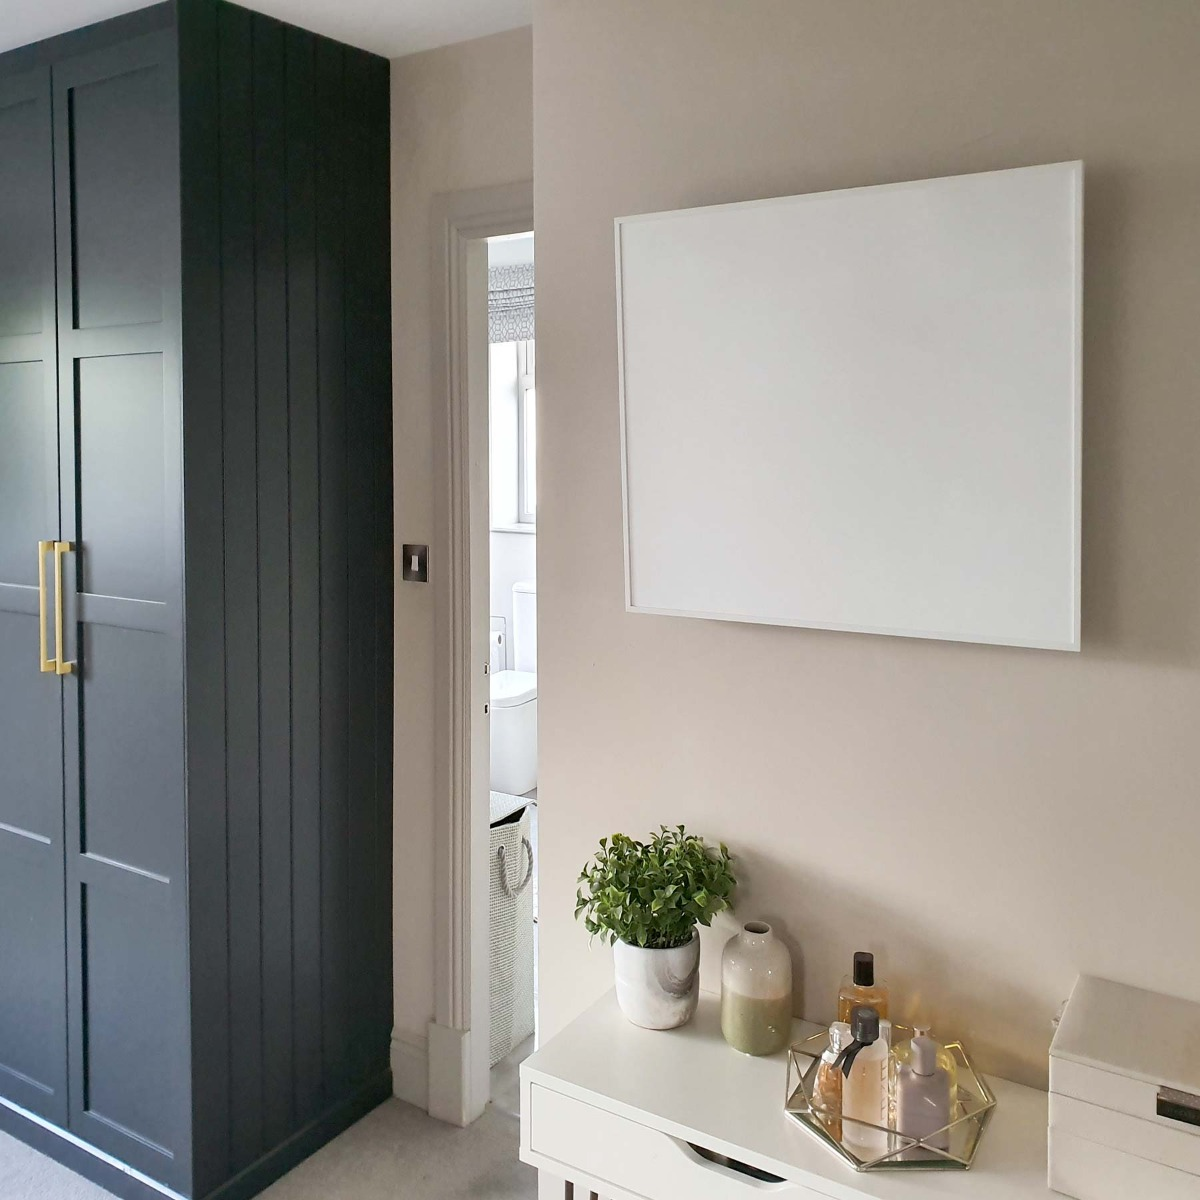 Ecostrad Accent Infrared Panel